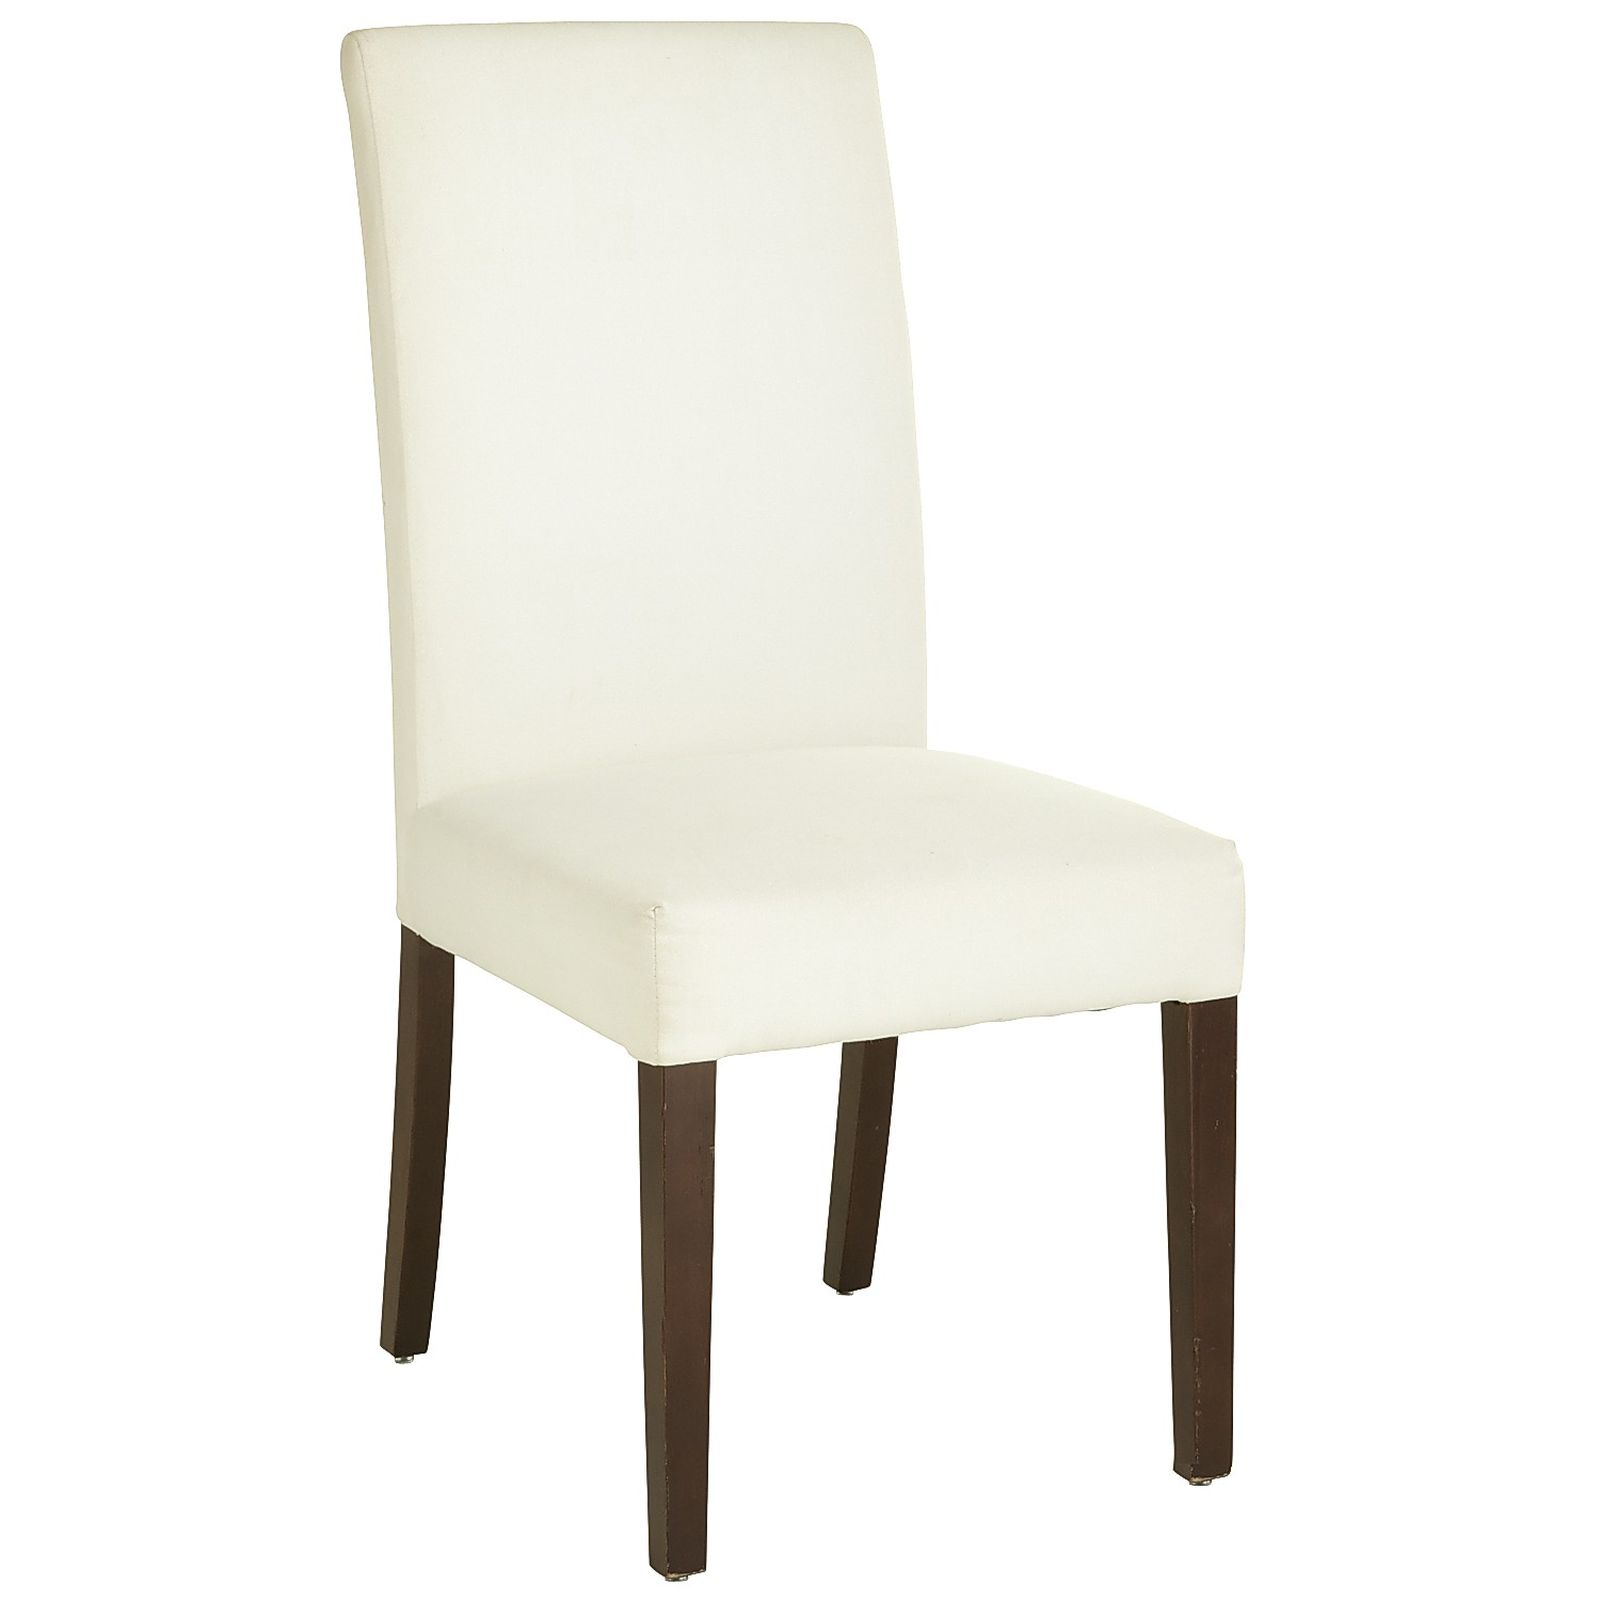 simply elegant chair covers and linens refurbished kitchen table chairs lounge furniture